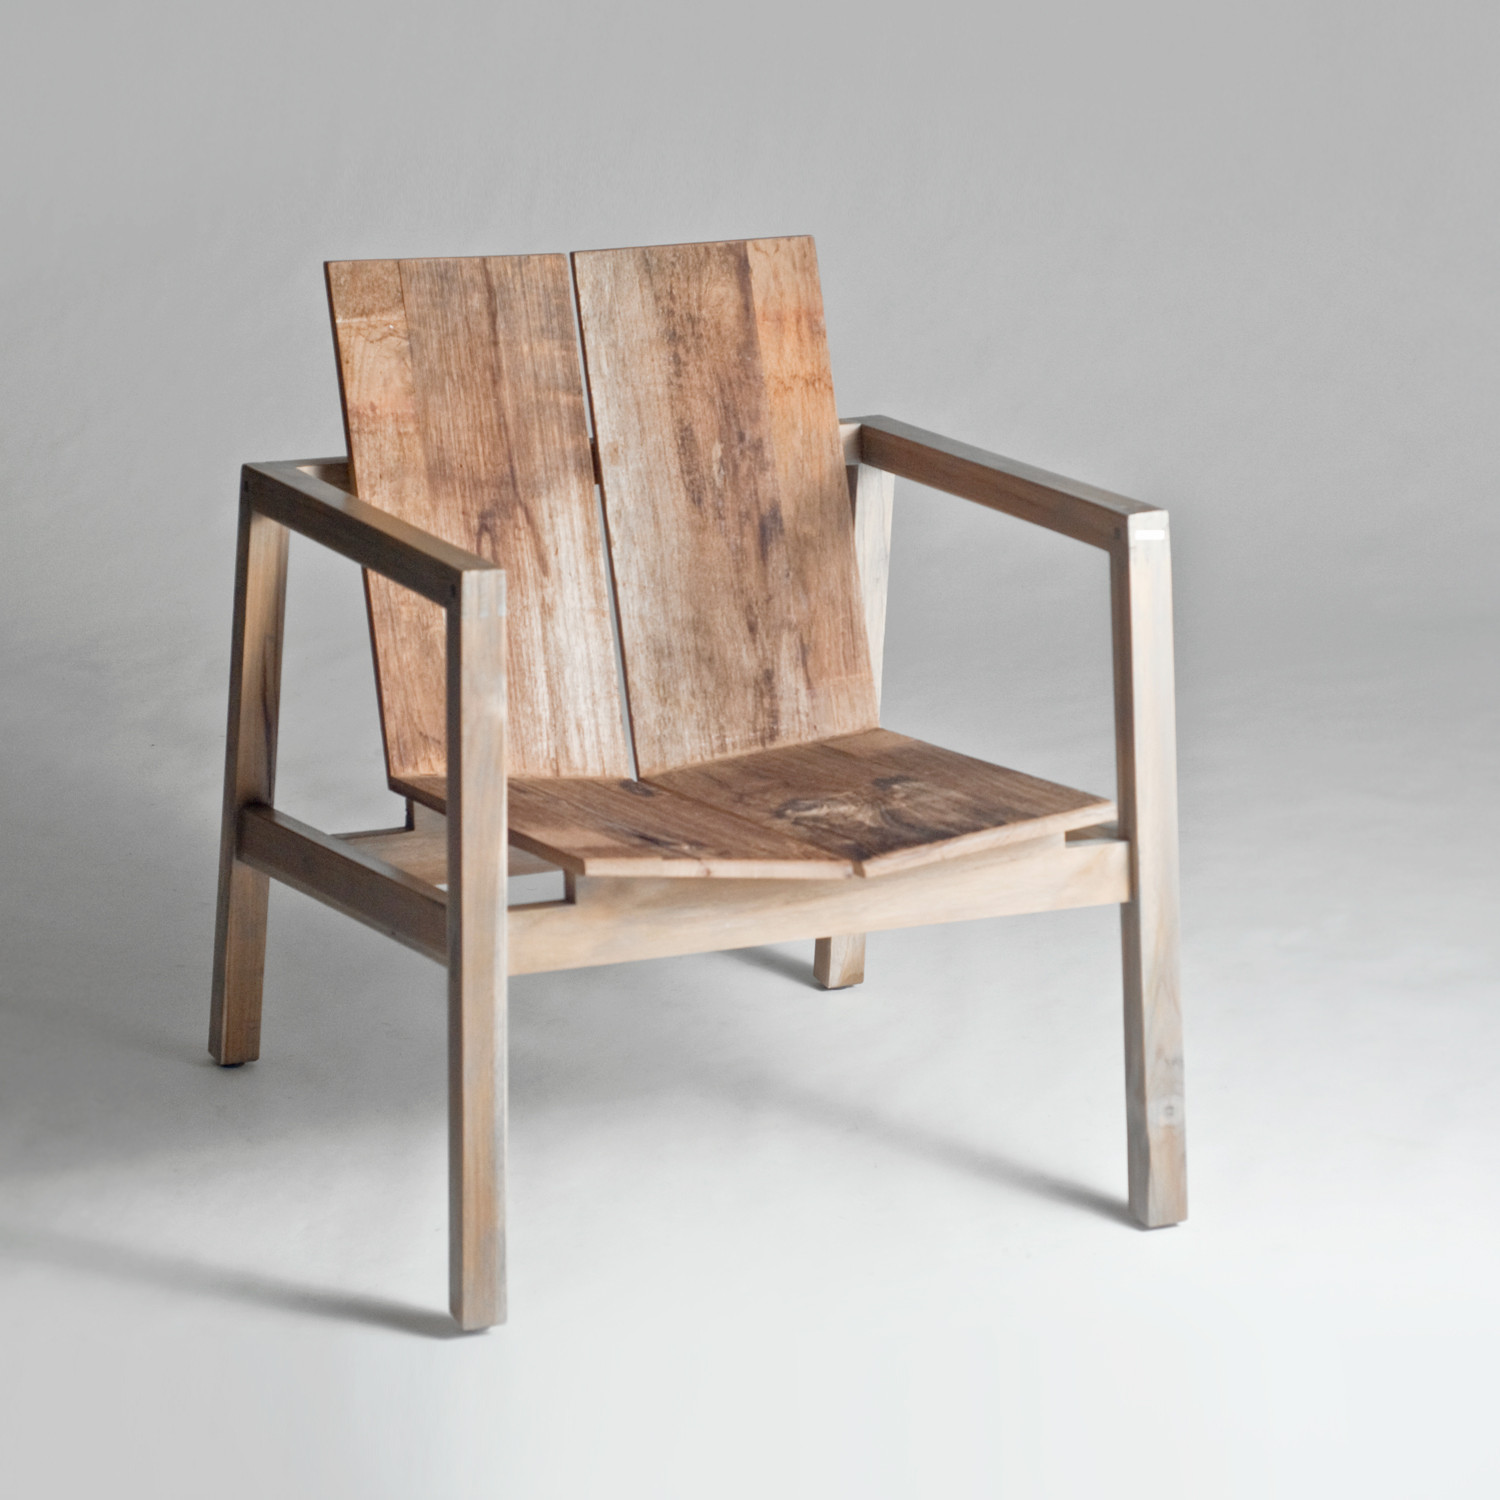 Modern wood chair with arms - Old Wood Arm Chair